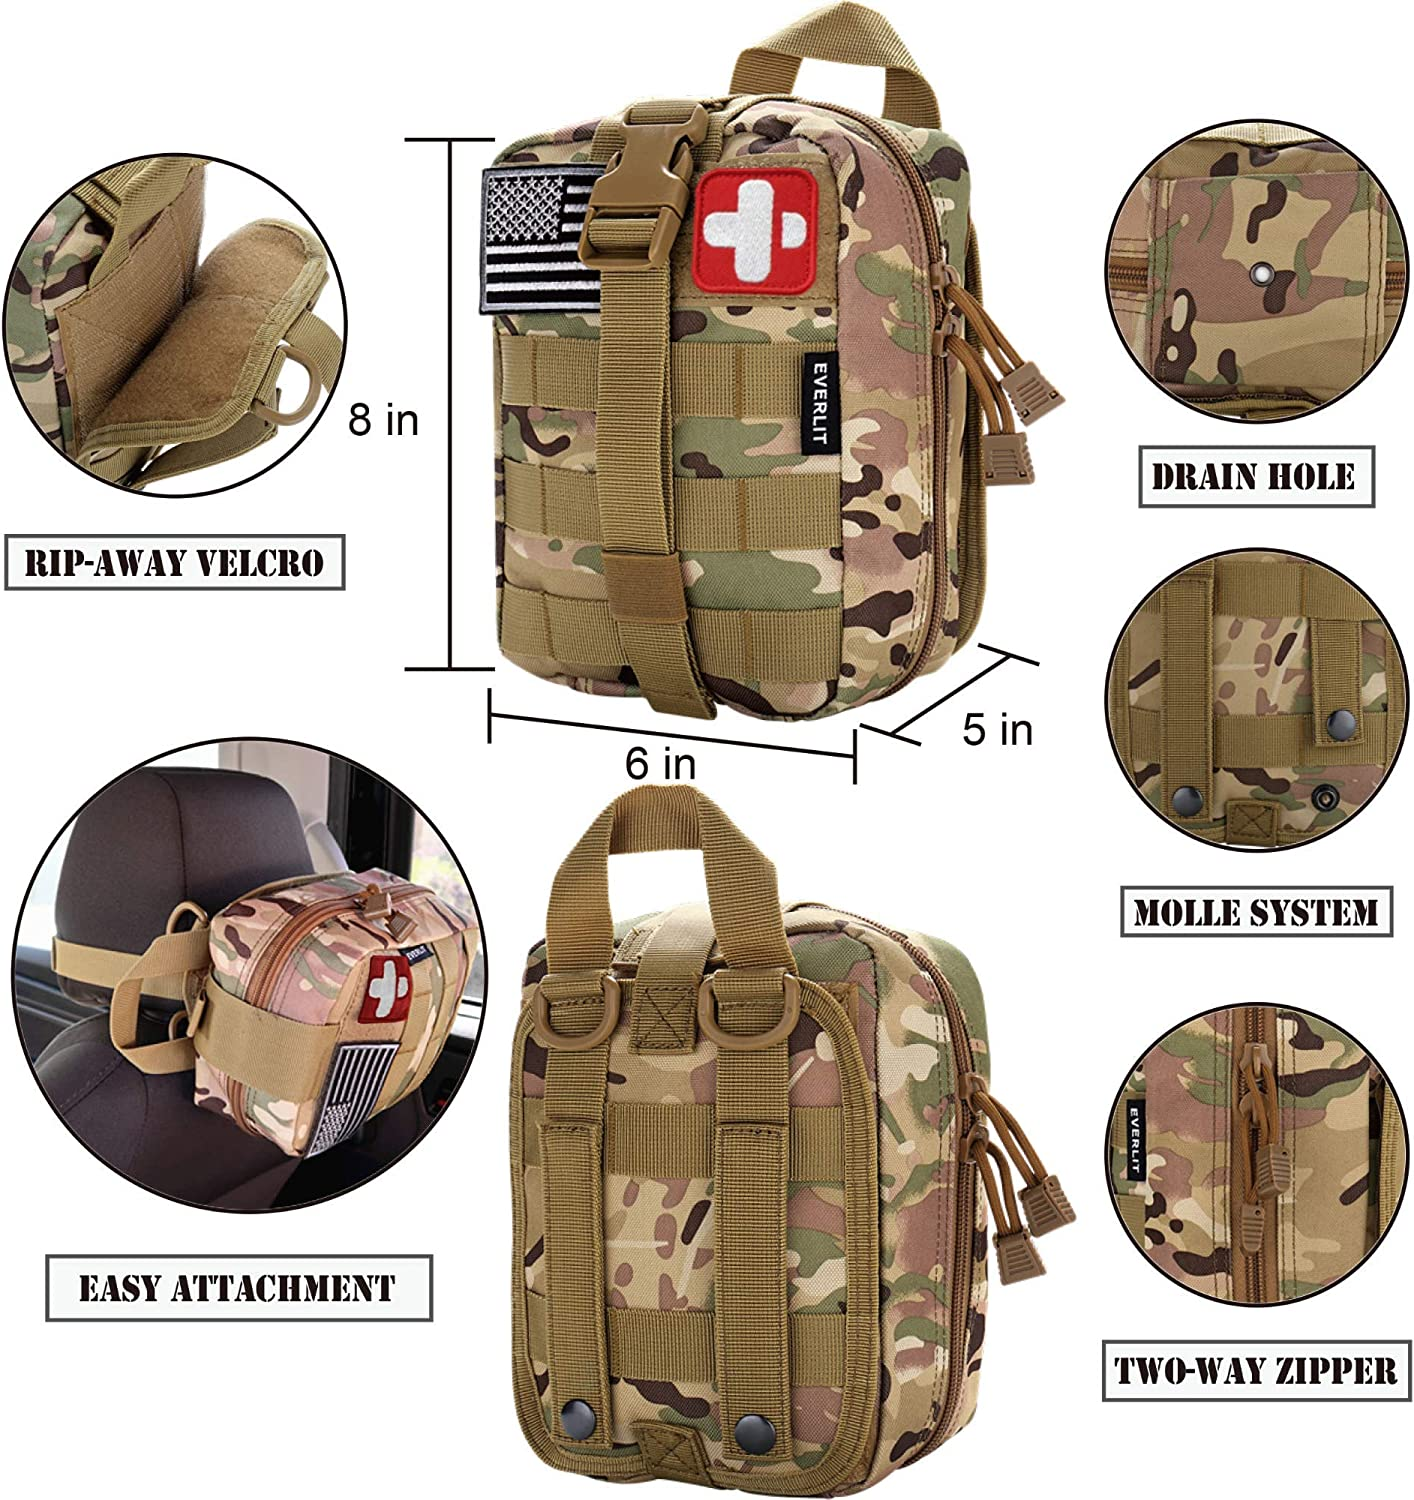 EVERLIT 250 Pieces Survival First Aid Kit IFAK Molle System Compatible Outdoor Gear Emergency Kits Trauma Bag for Camping Boat Hunting Hiking Home Car Earthquake and Adventures (CP Camo) : Sports & Outdoors